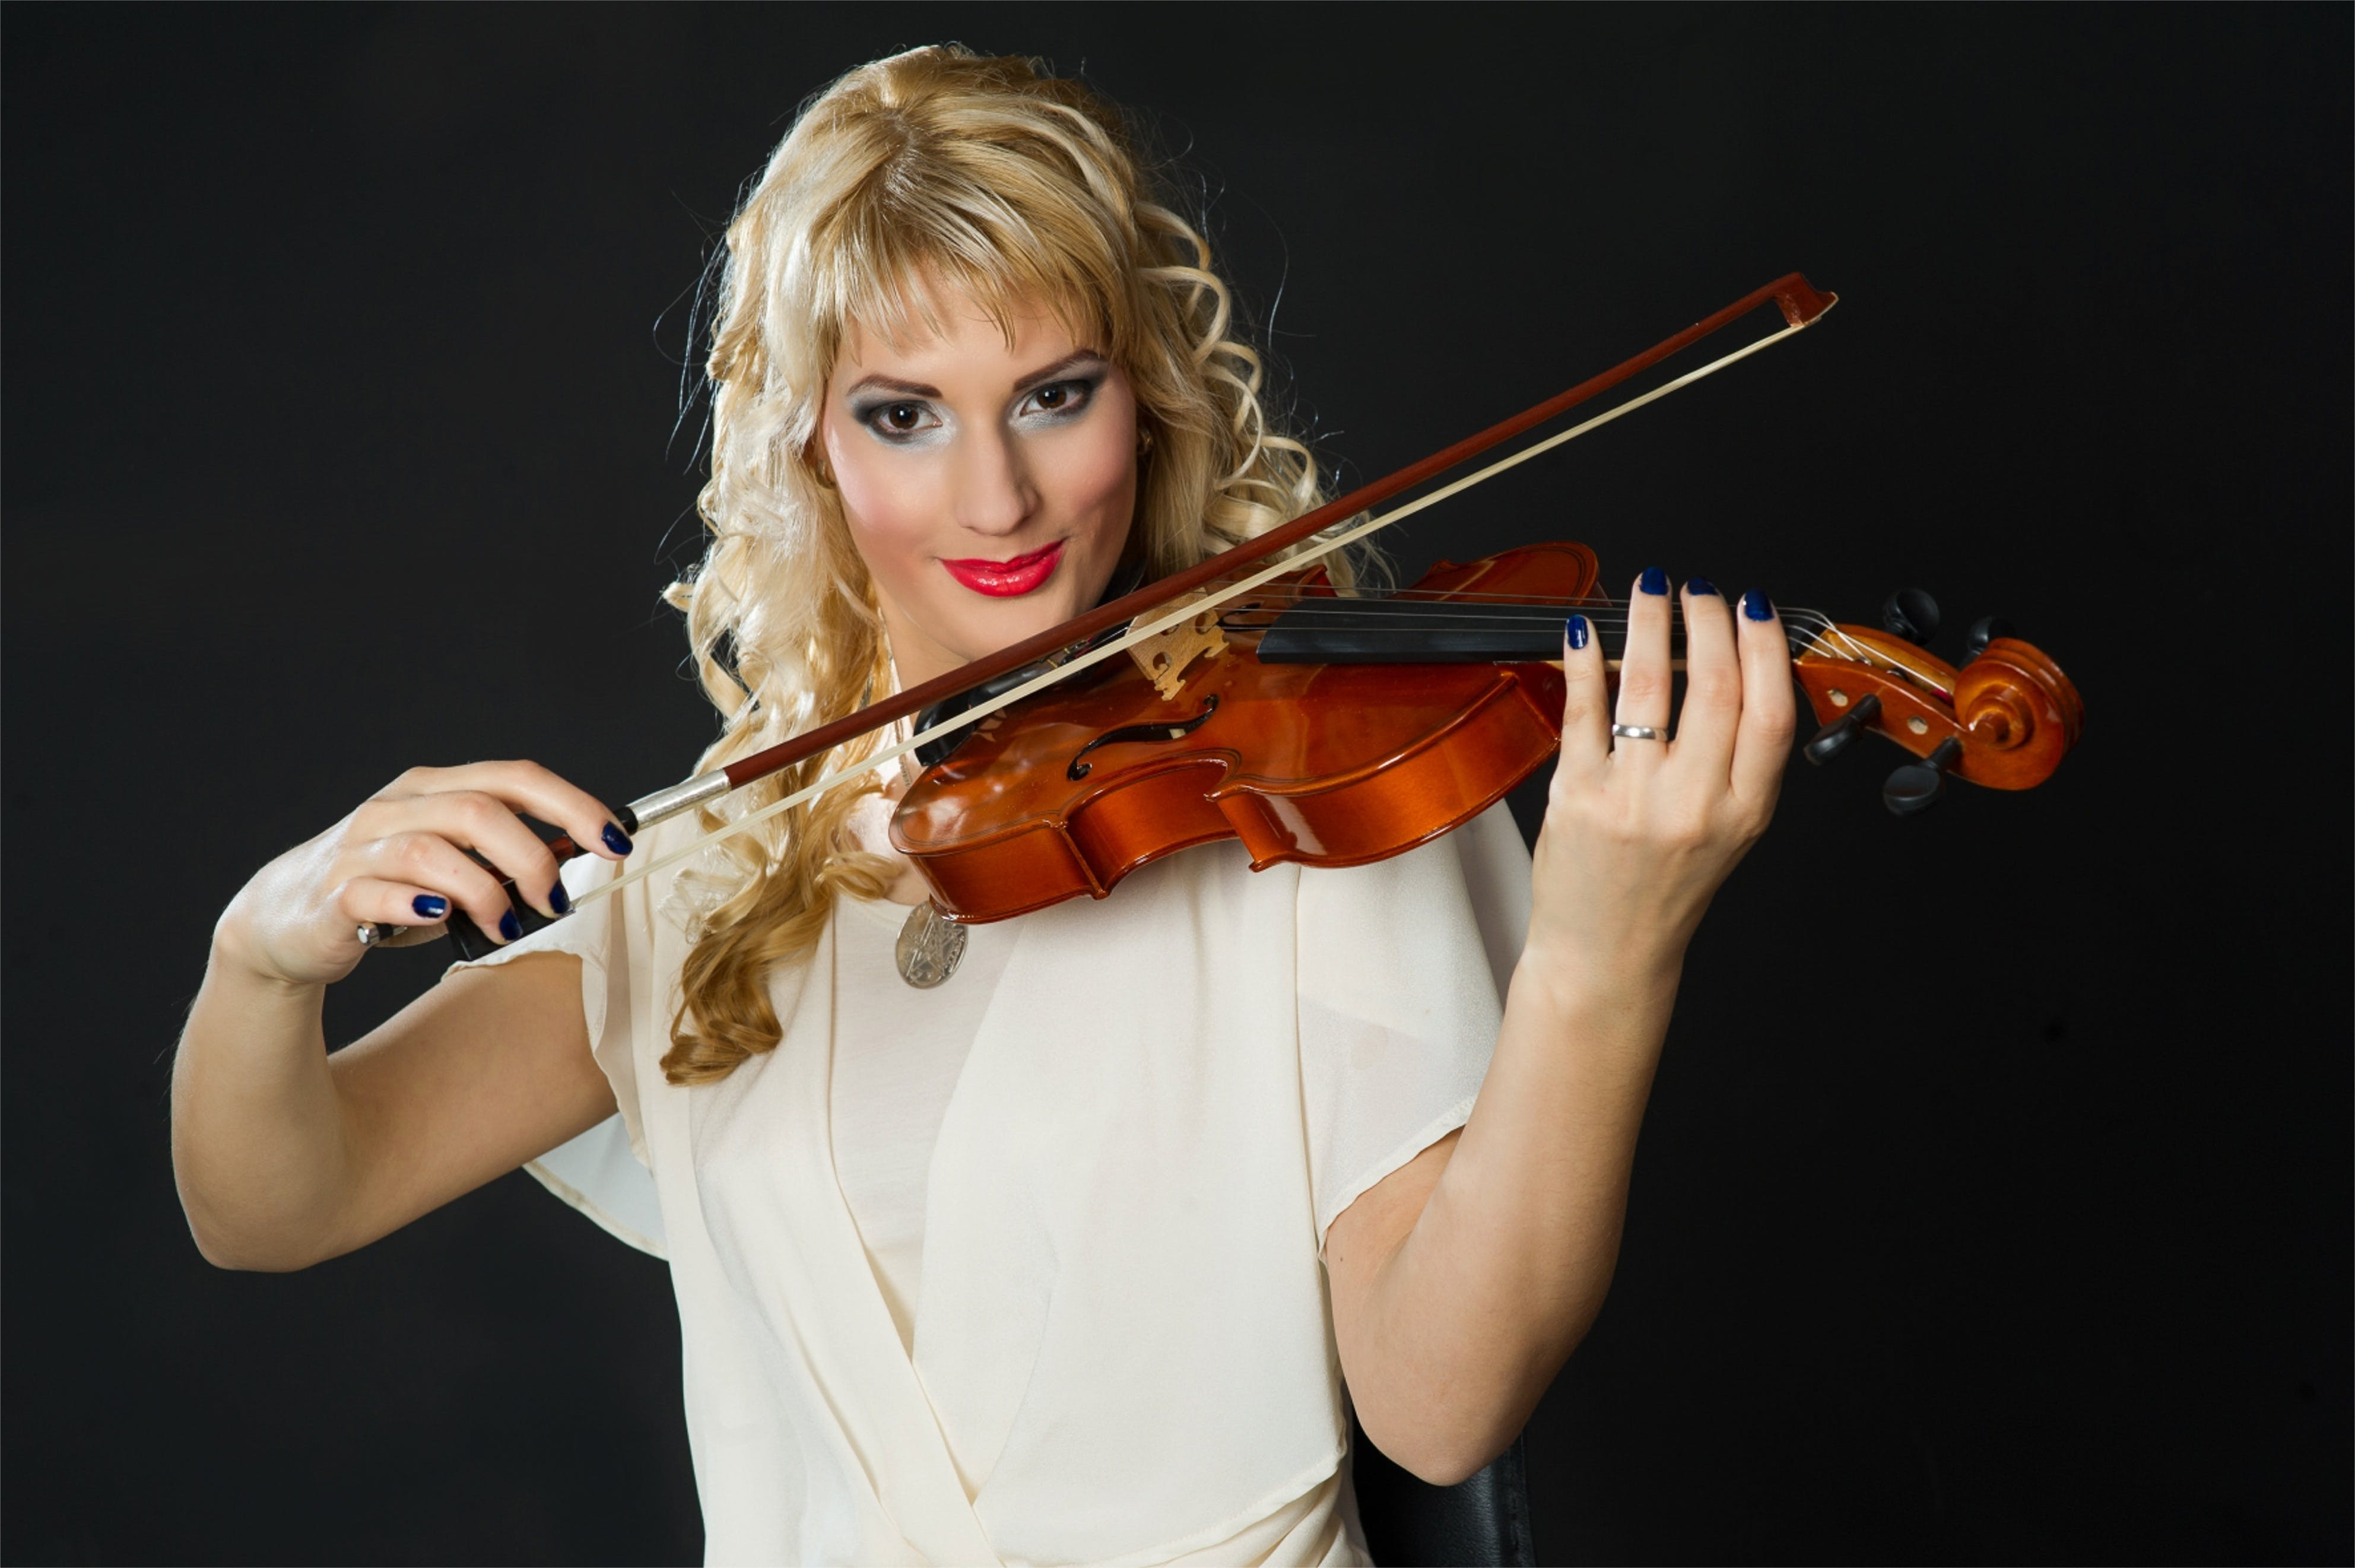 Woman in White Blouse Playing Violin